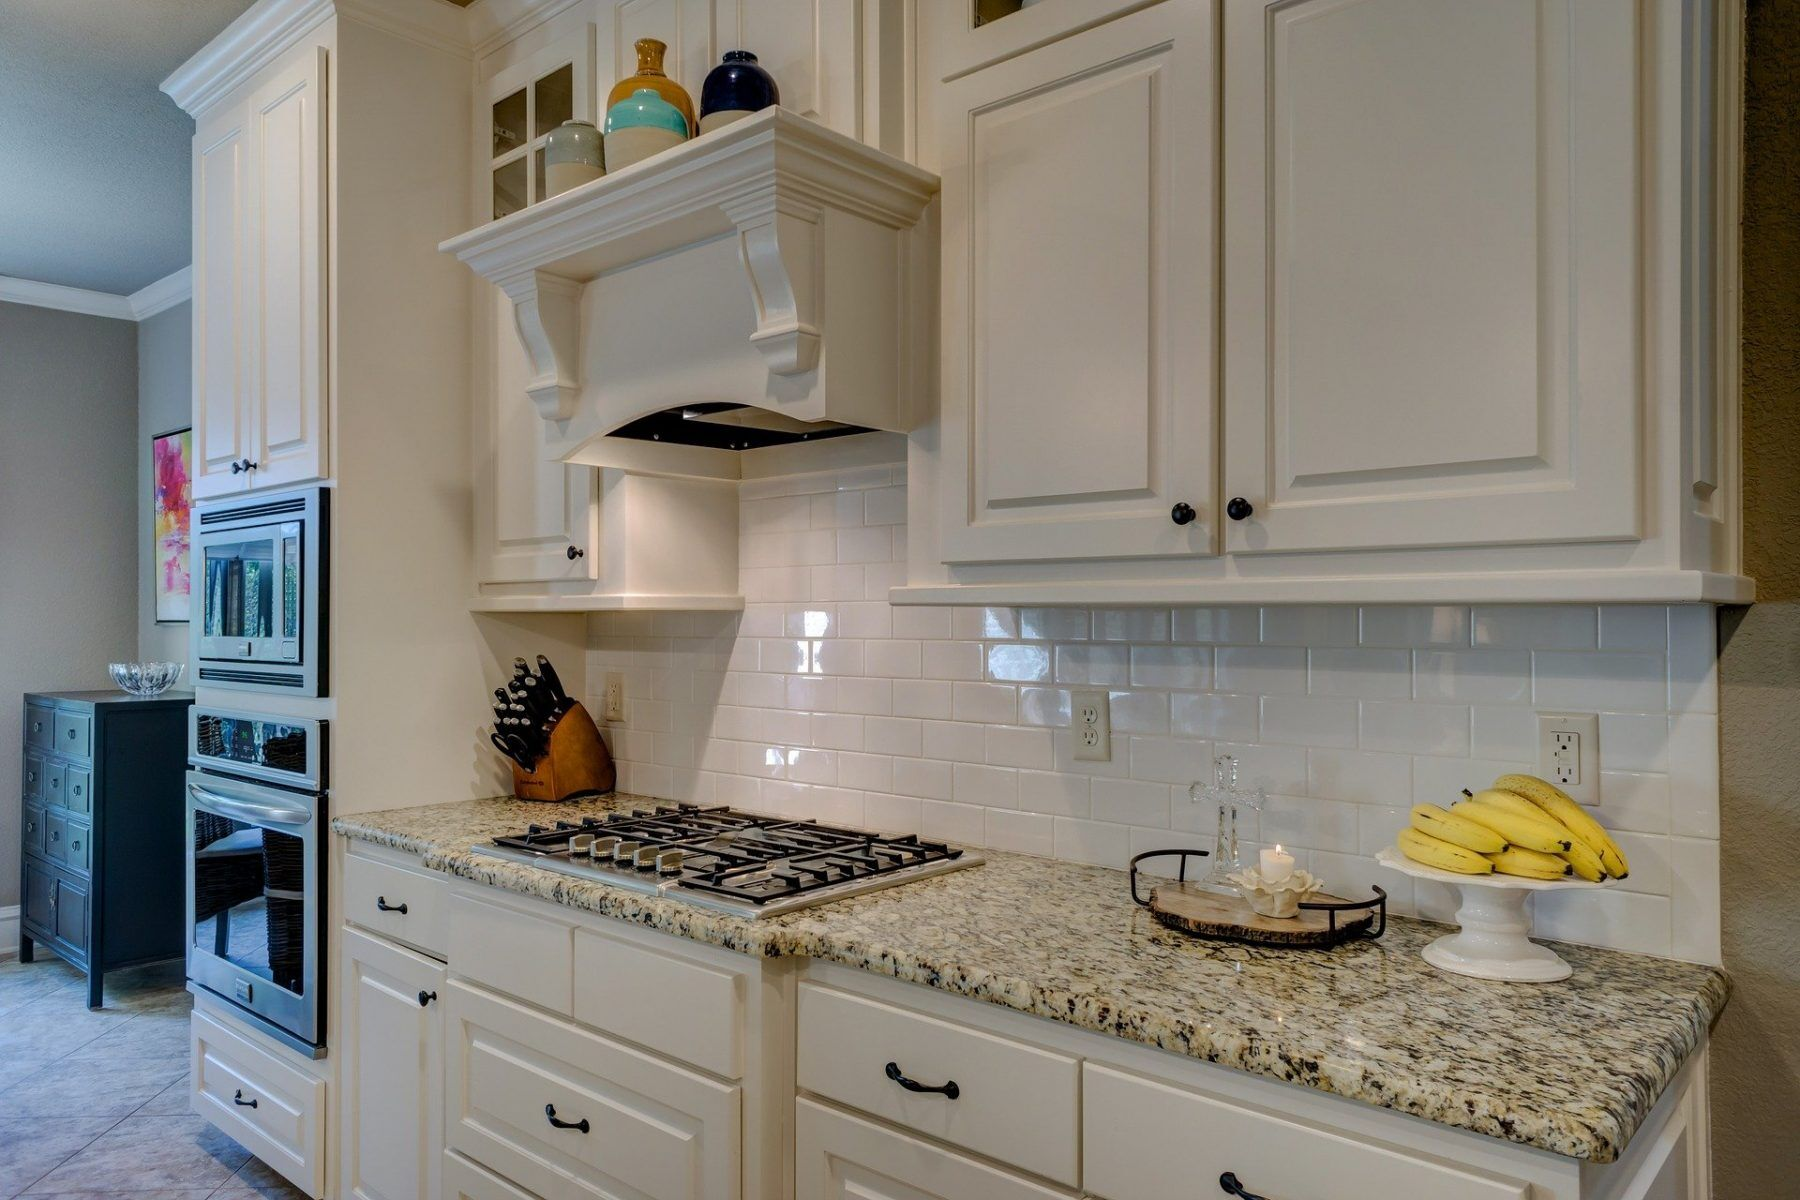 New Manufactured Home Dealers Near Me: Fenton, Michigan